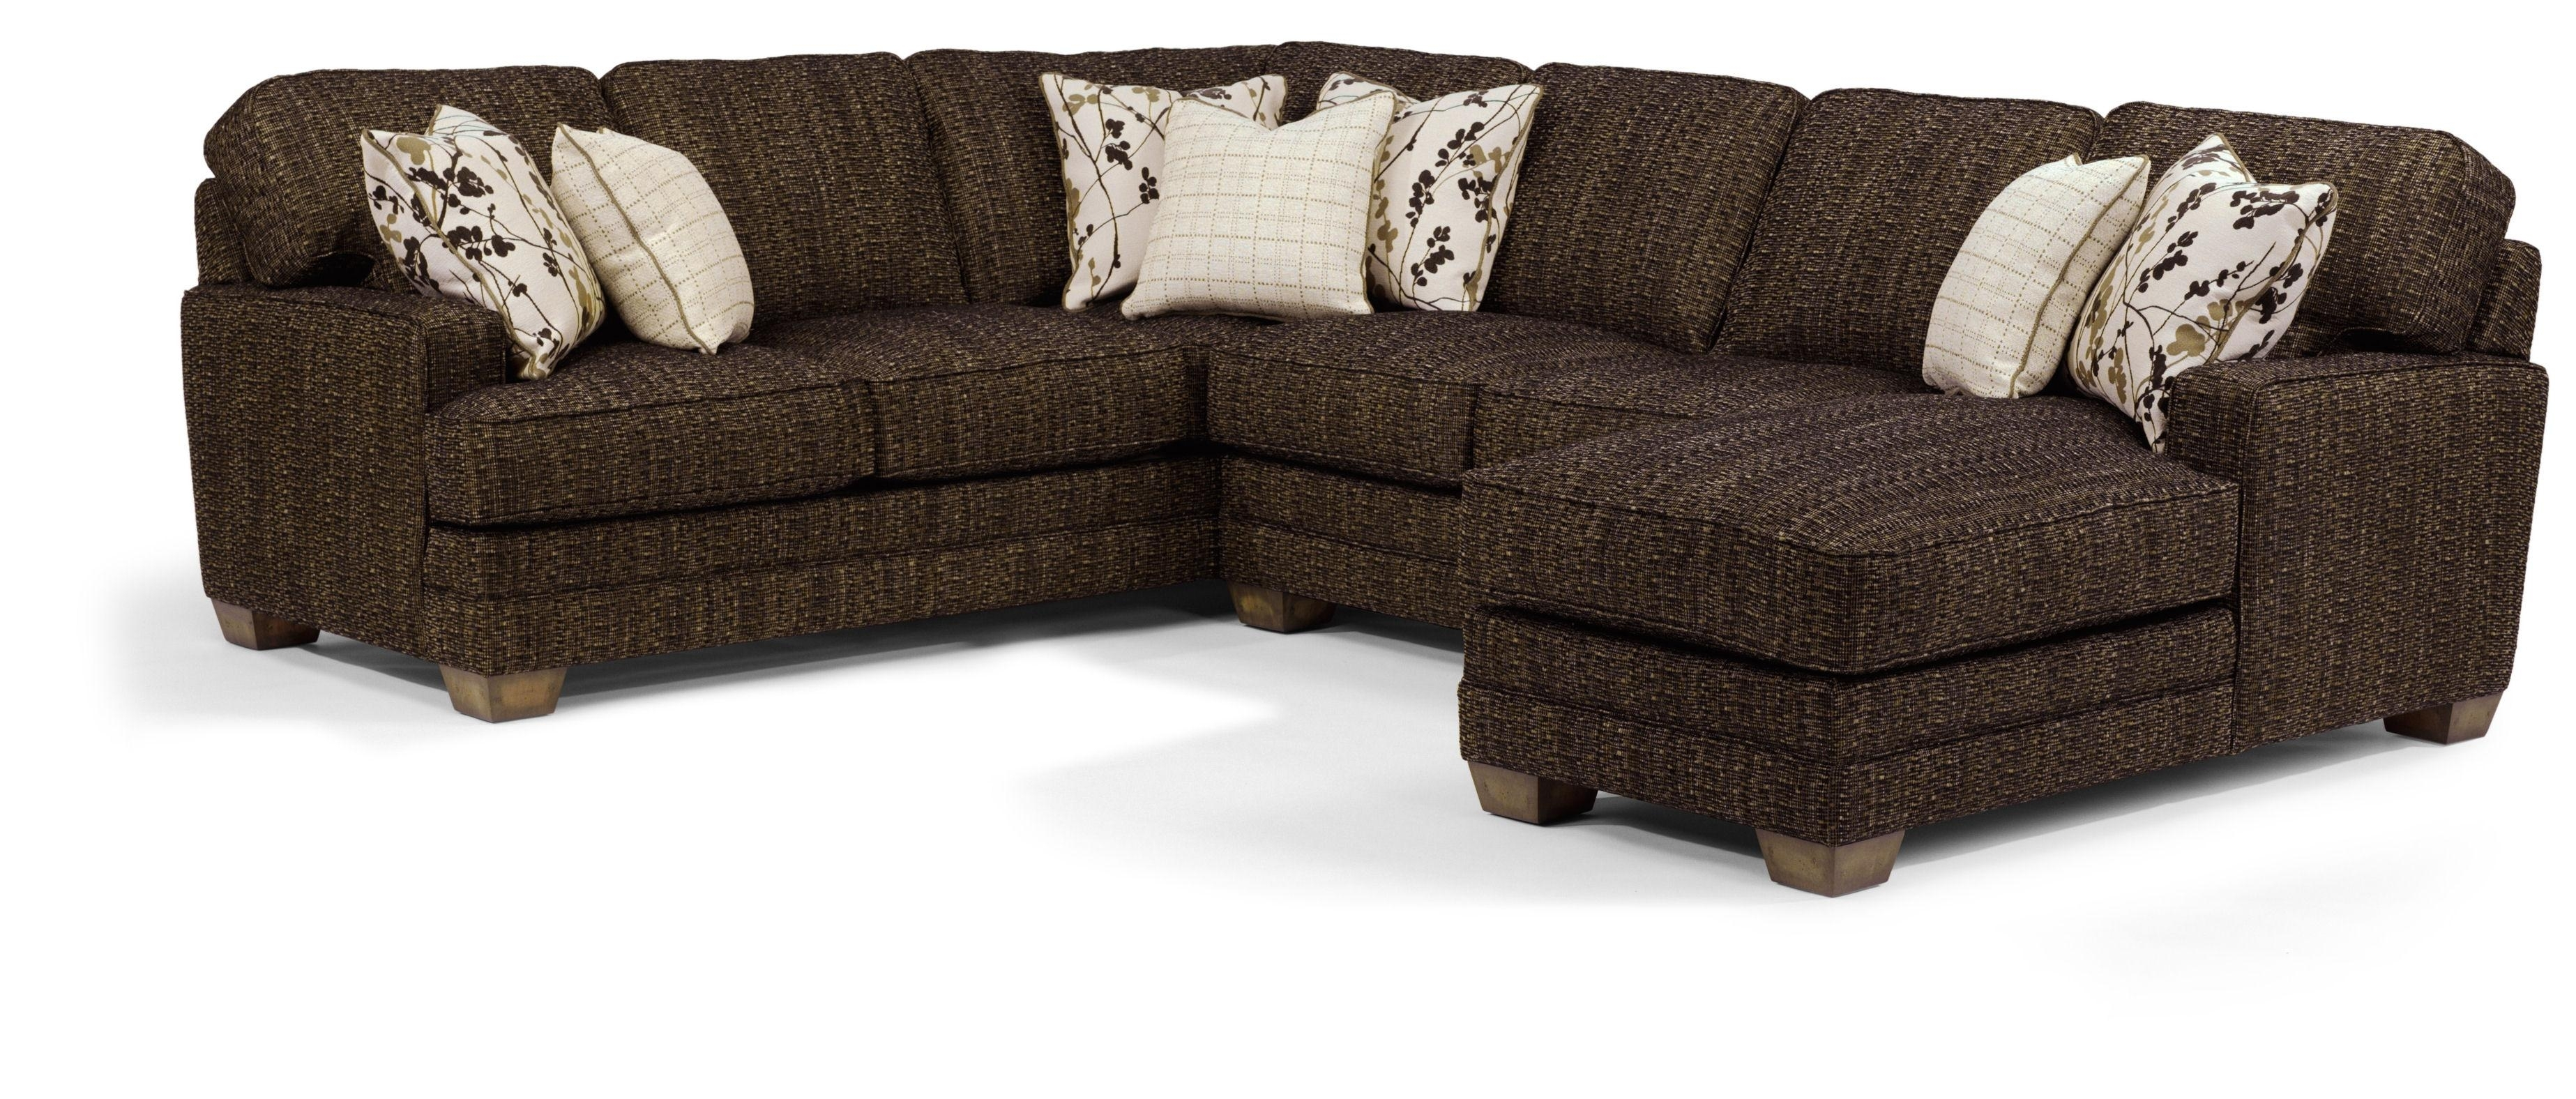 Flexsteel That's My Style <B>Customizable</b> 3 Piece Sectional Sofa Within Delano 2 Piece Sectionals With Laf Oversized Chaise (Image 17 of 25)